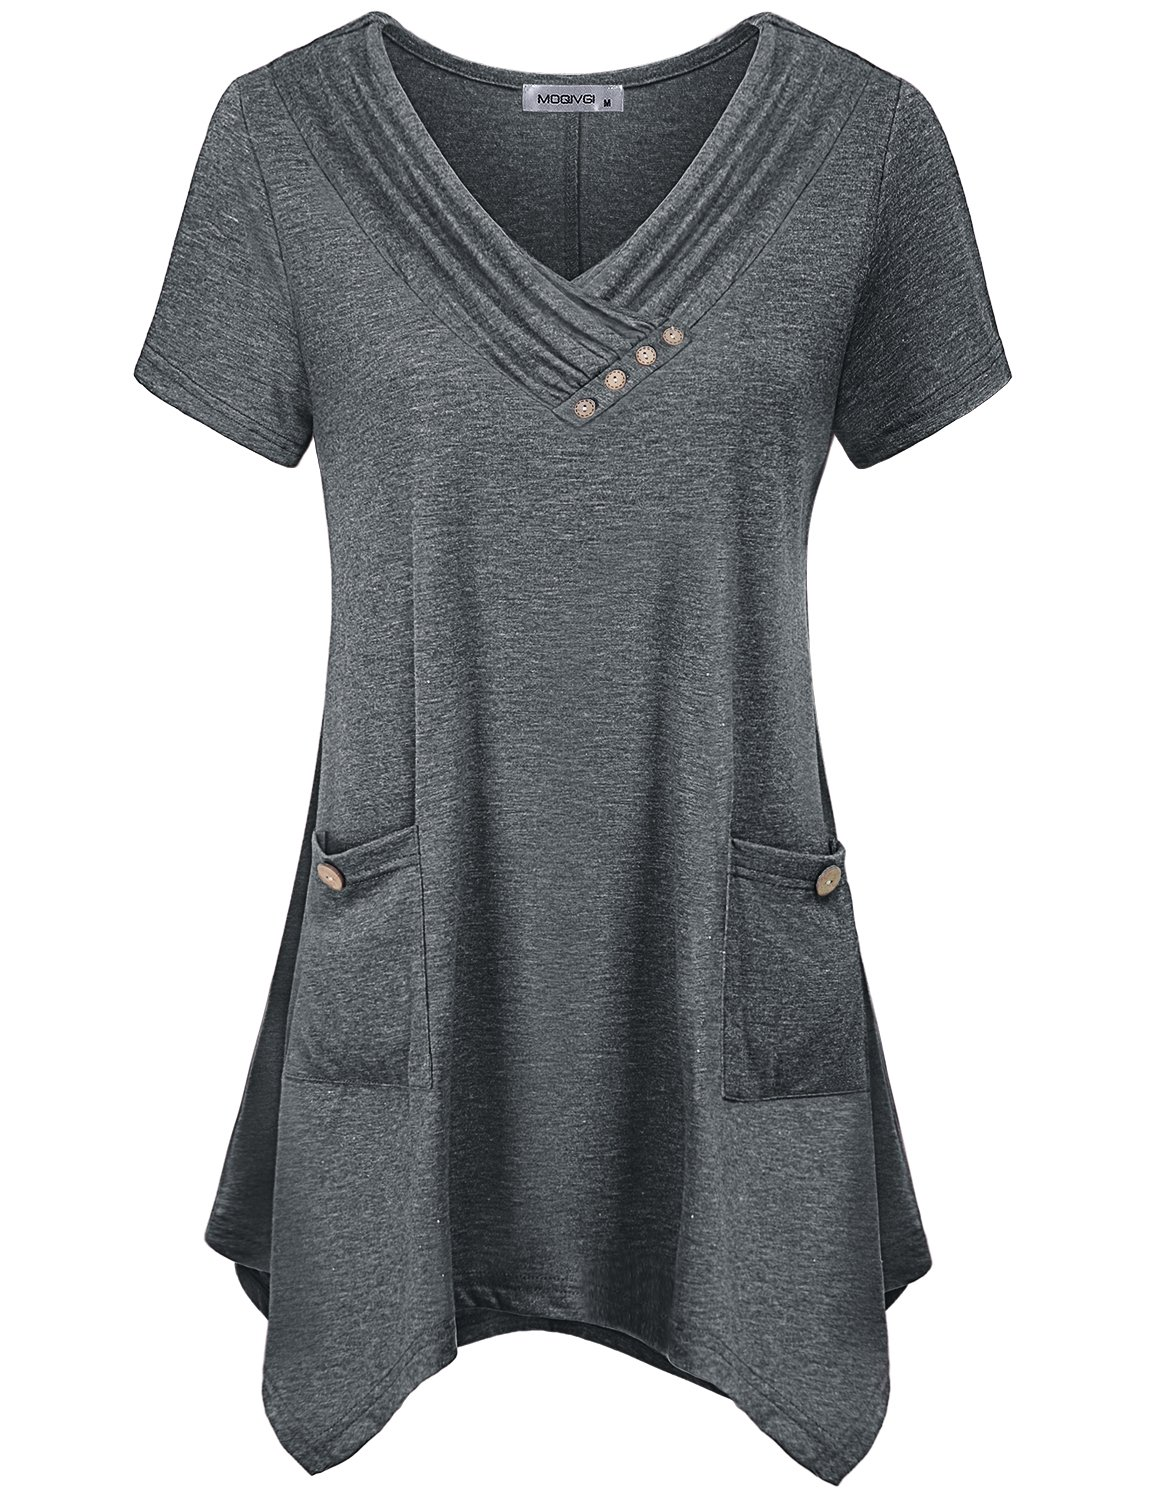 MOQIVGI Summer Tunics for Women,Ladies Legging Shirts Pretty V Neck Short Sleeve Blouse Office Wear Decorative Buttons Relaxed Fit Curved Hem Country Style A-line Tops with Pockets Grey XX-Large